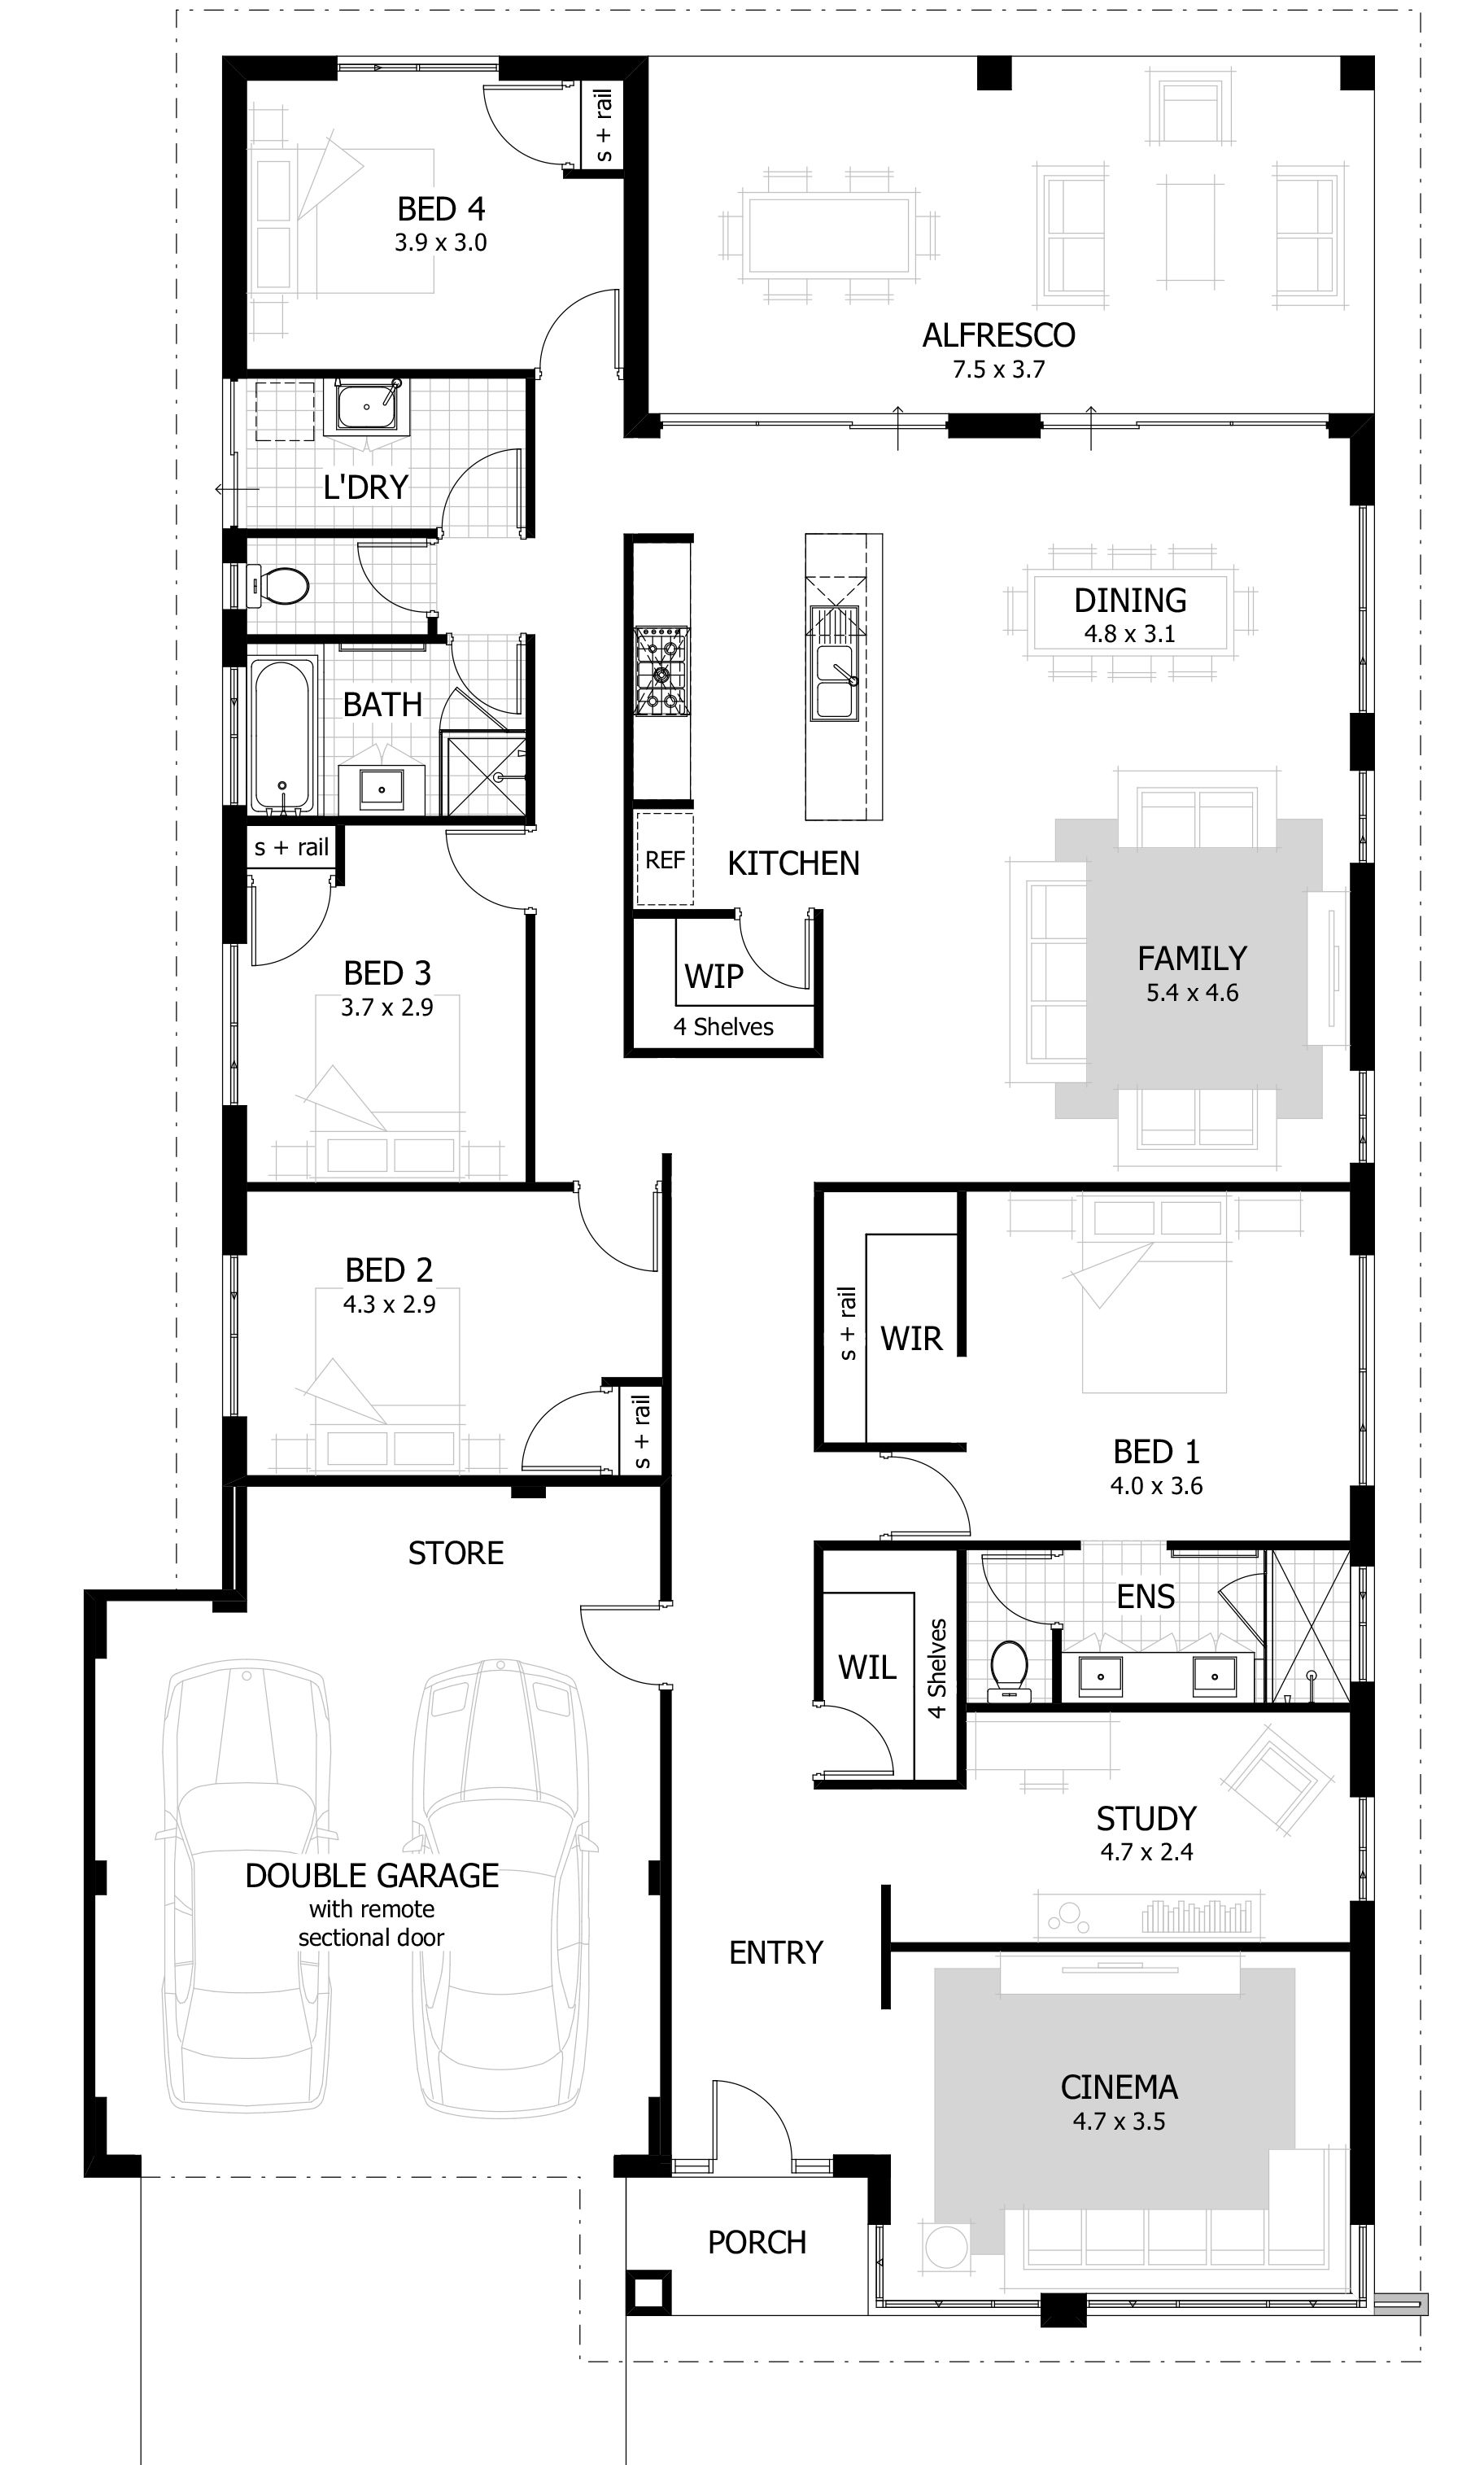 4 Bedroom House Plans Home Designs House Plans Australia 4 Bedroom House Plans Four Bedroom House Plans